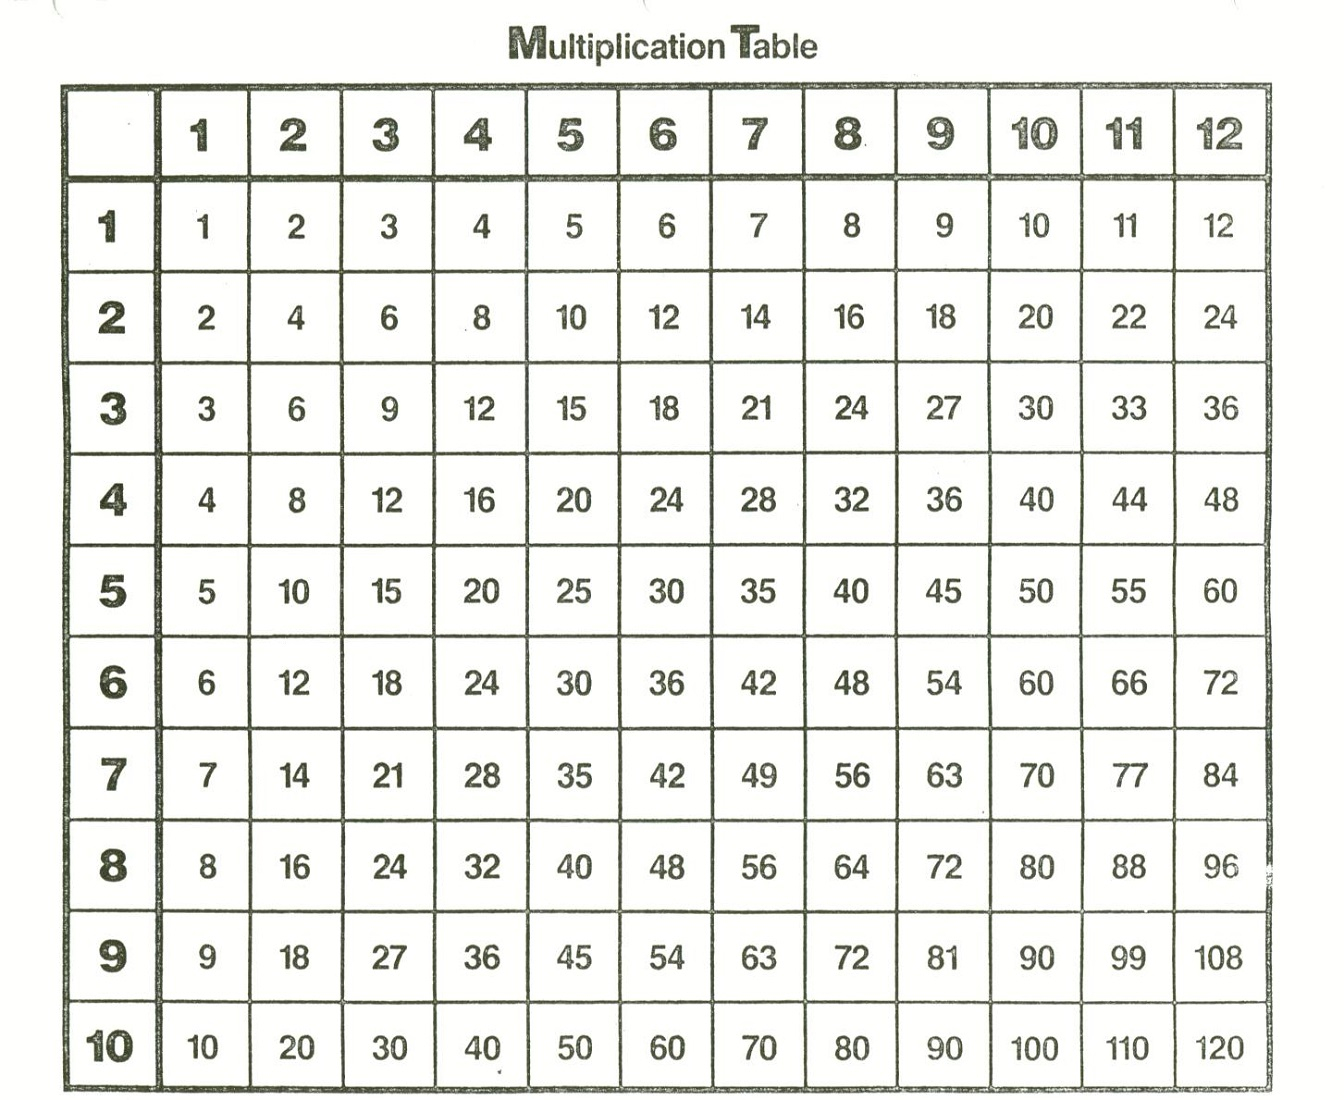 Multiplication Table Chart Printable Printable Multiplication Table - Free Printable Multiplication Chart